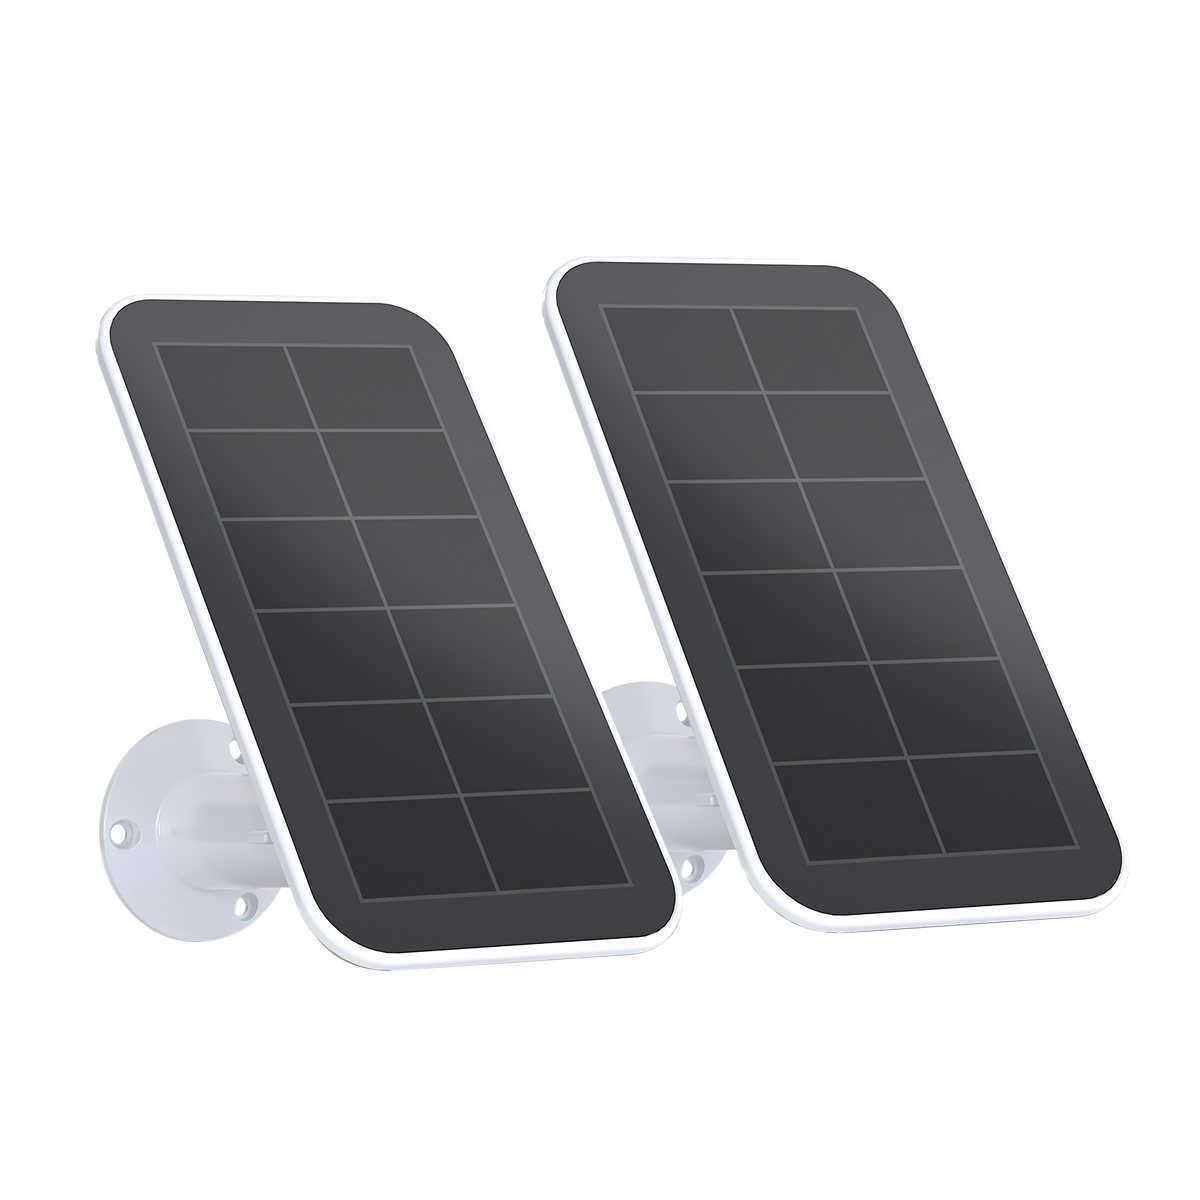 2 pack ultra and pro 3 solar